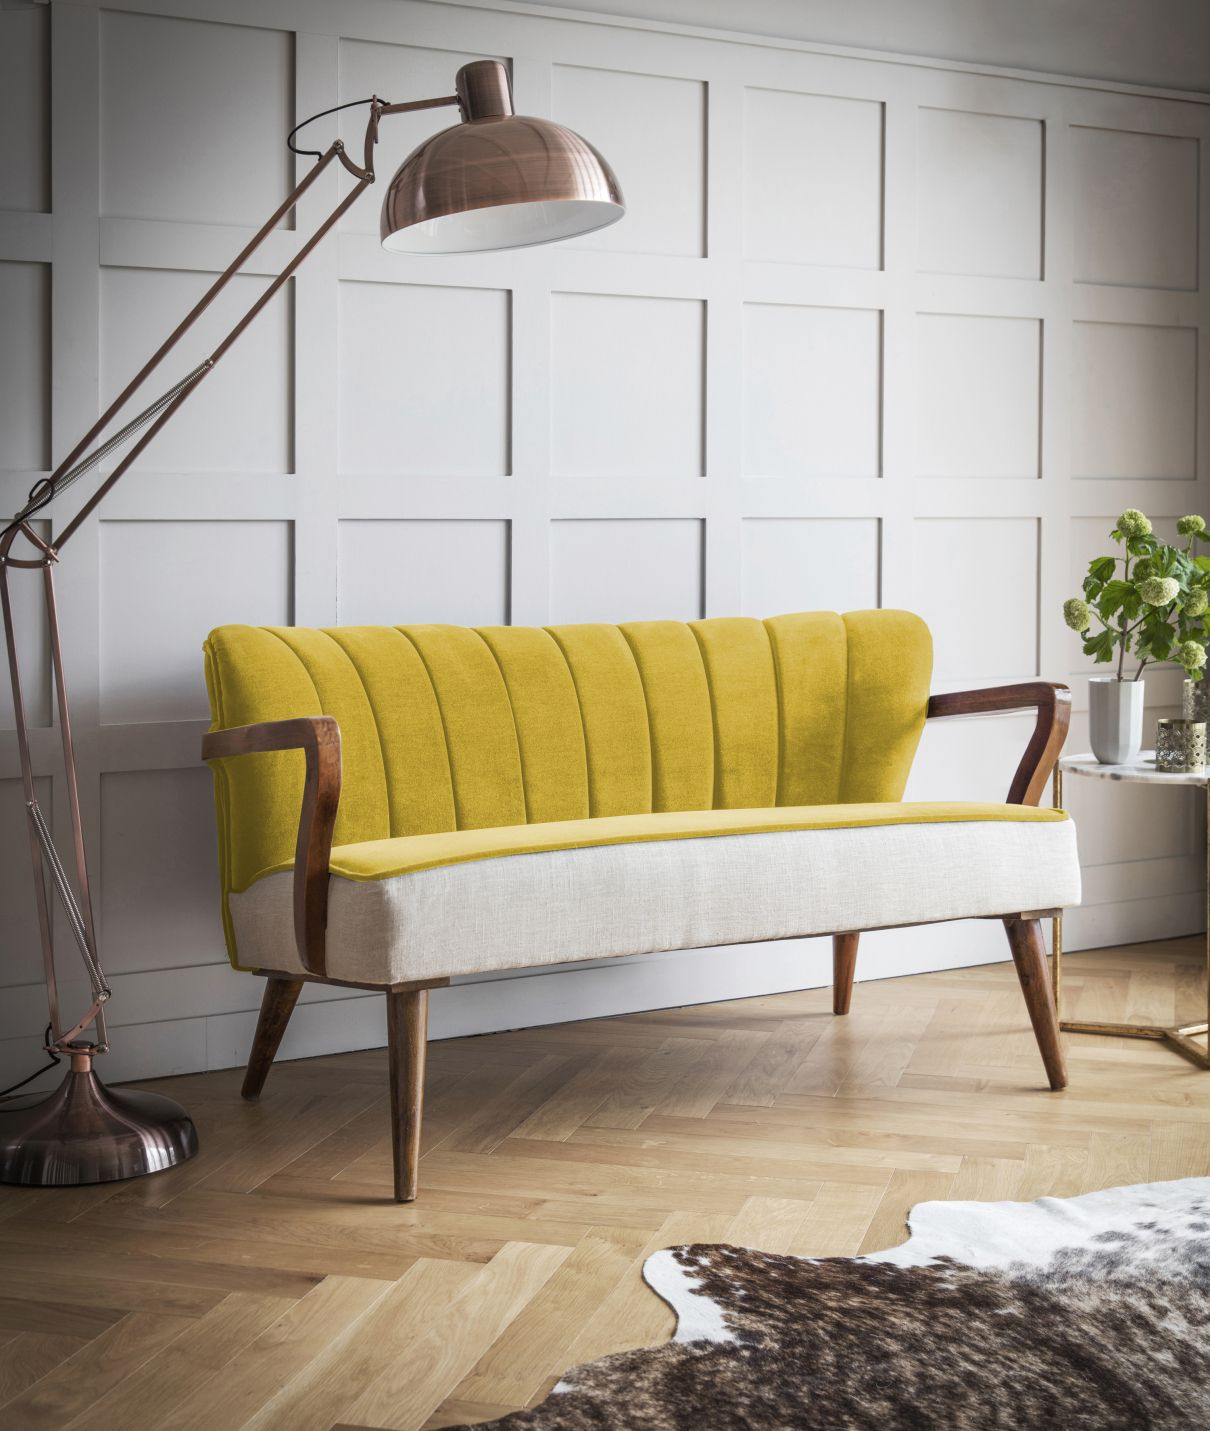 Proof-that-What-Your-Home-is-Lacking-is-a-Mid-Century-Sofa_7 Proof ...